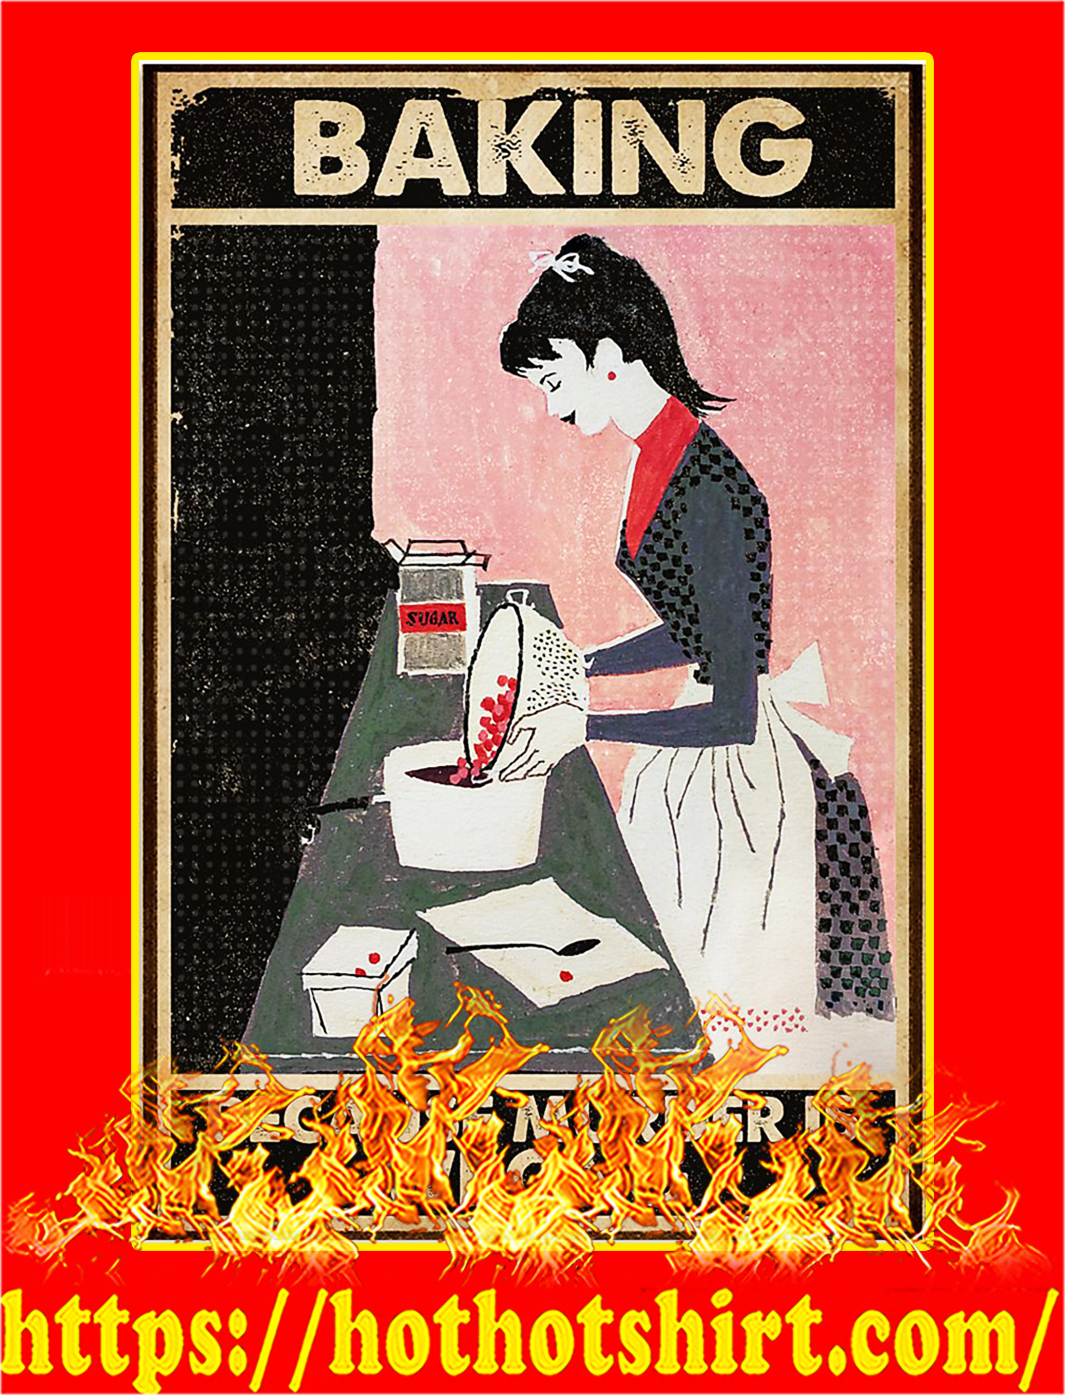 Baking because muder is wrong poster - A2